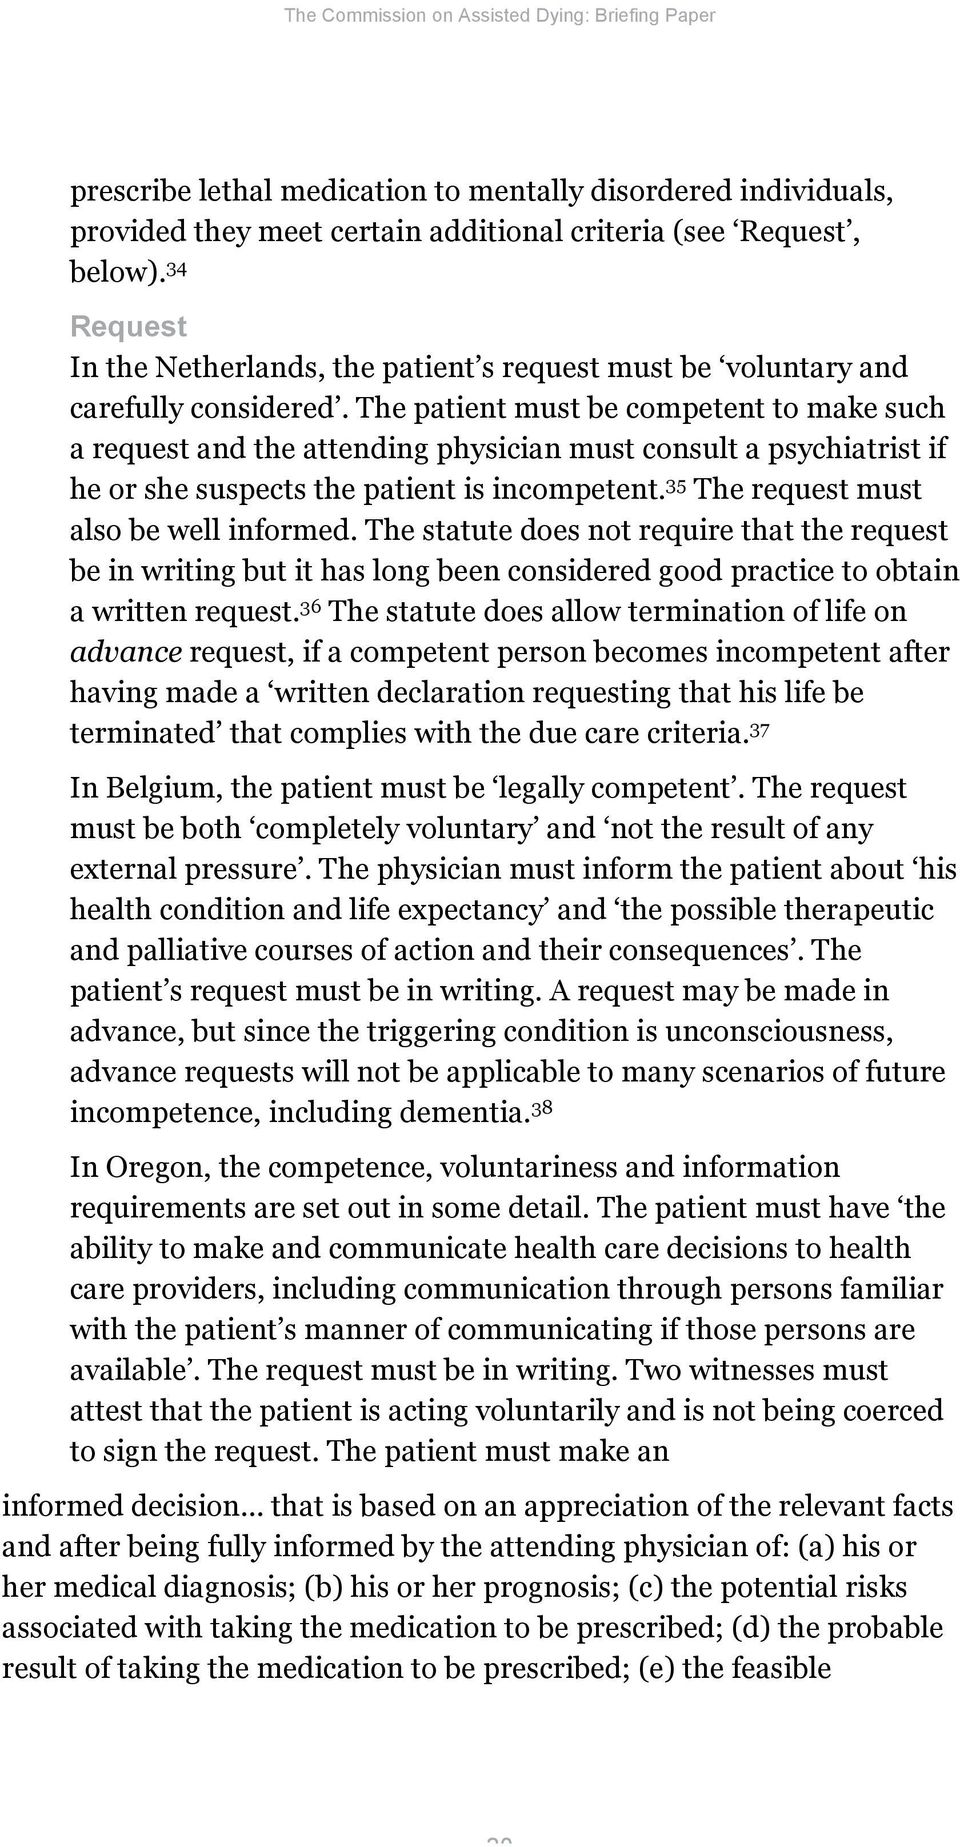 The patient must be competent to make such a request and the attending physician must consult a psychiatrist if he or she suspects the patient is incompetent.